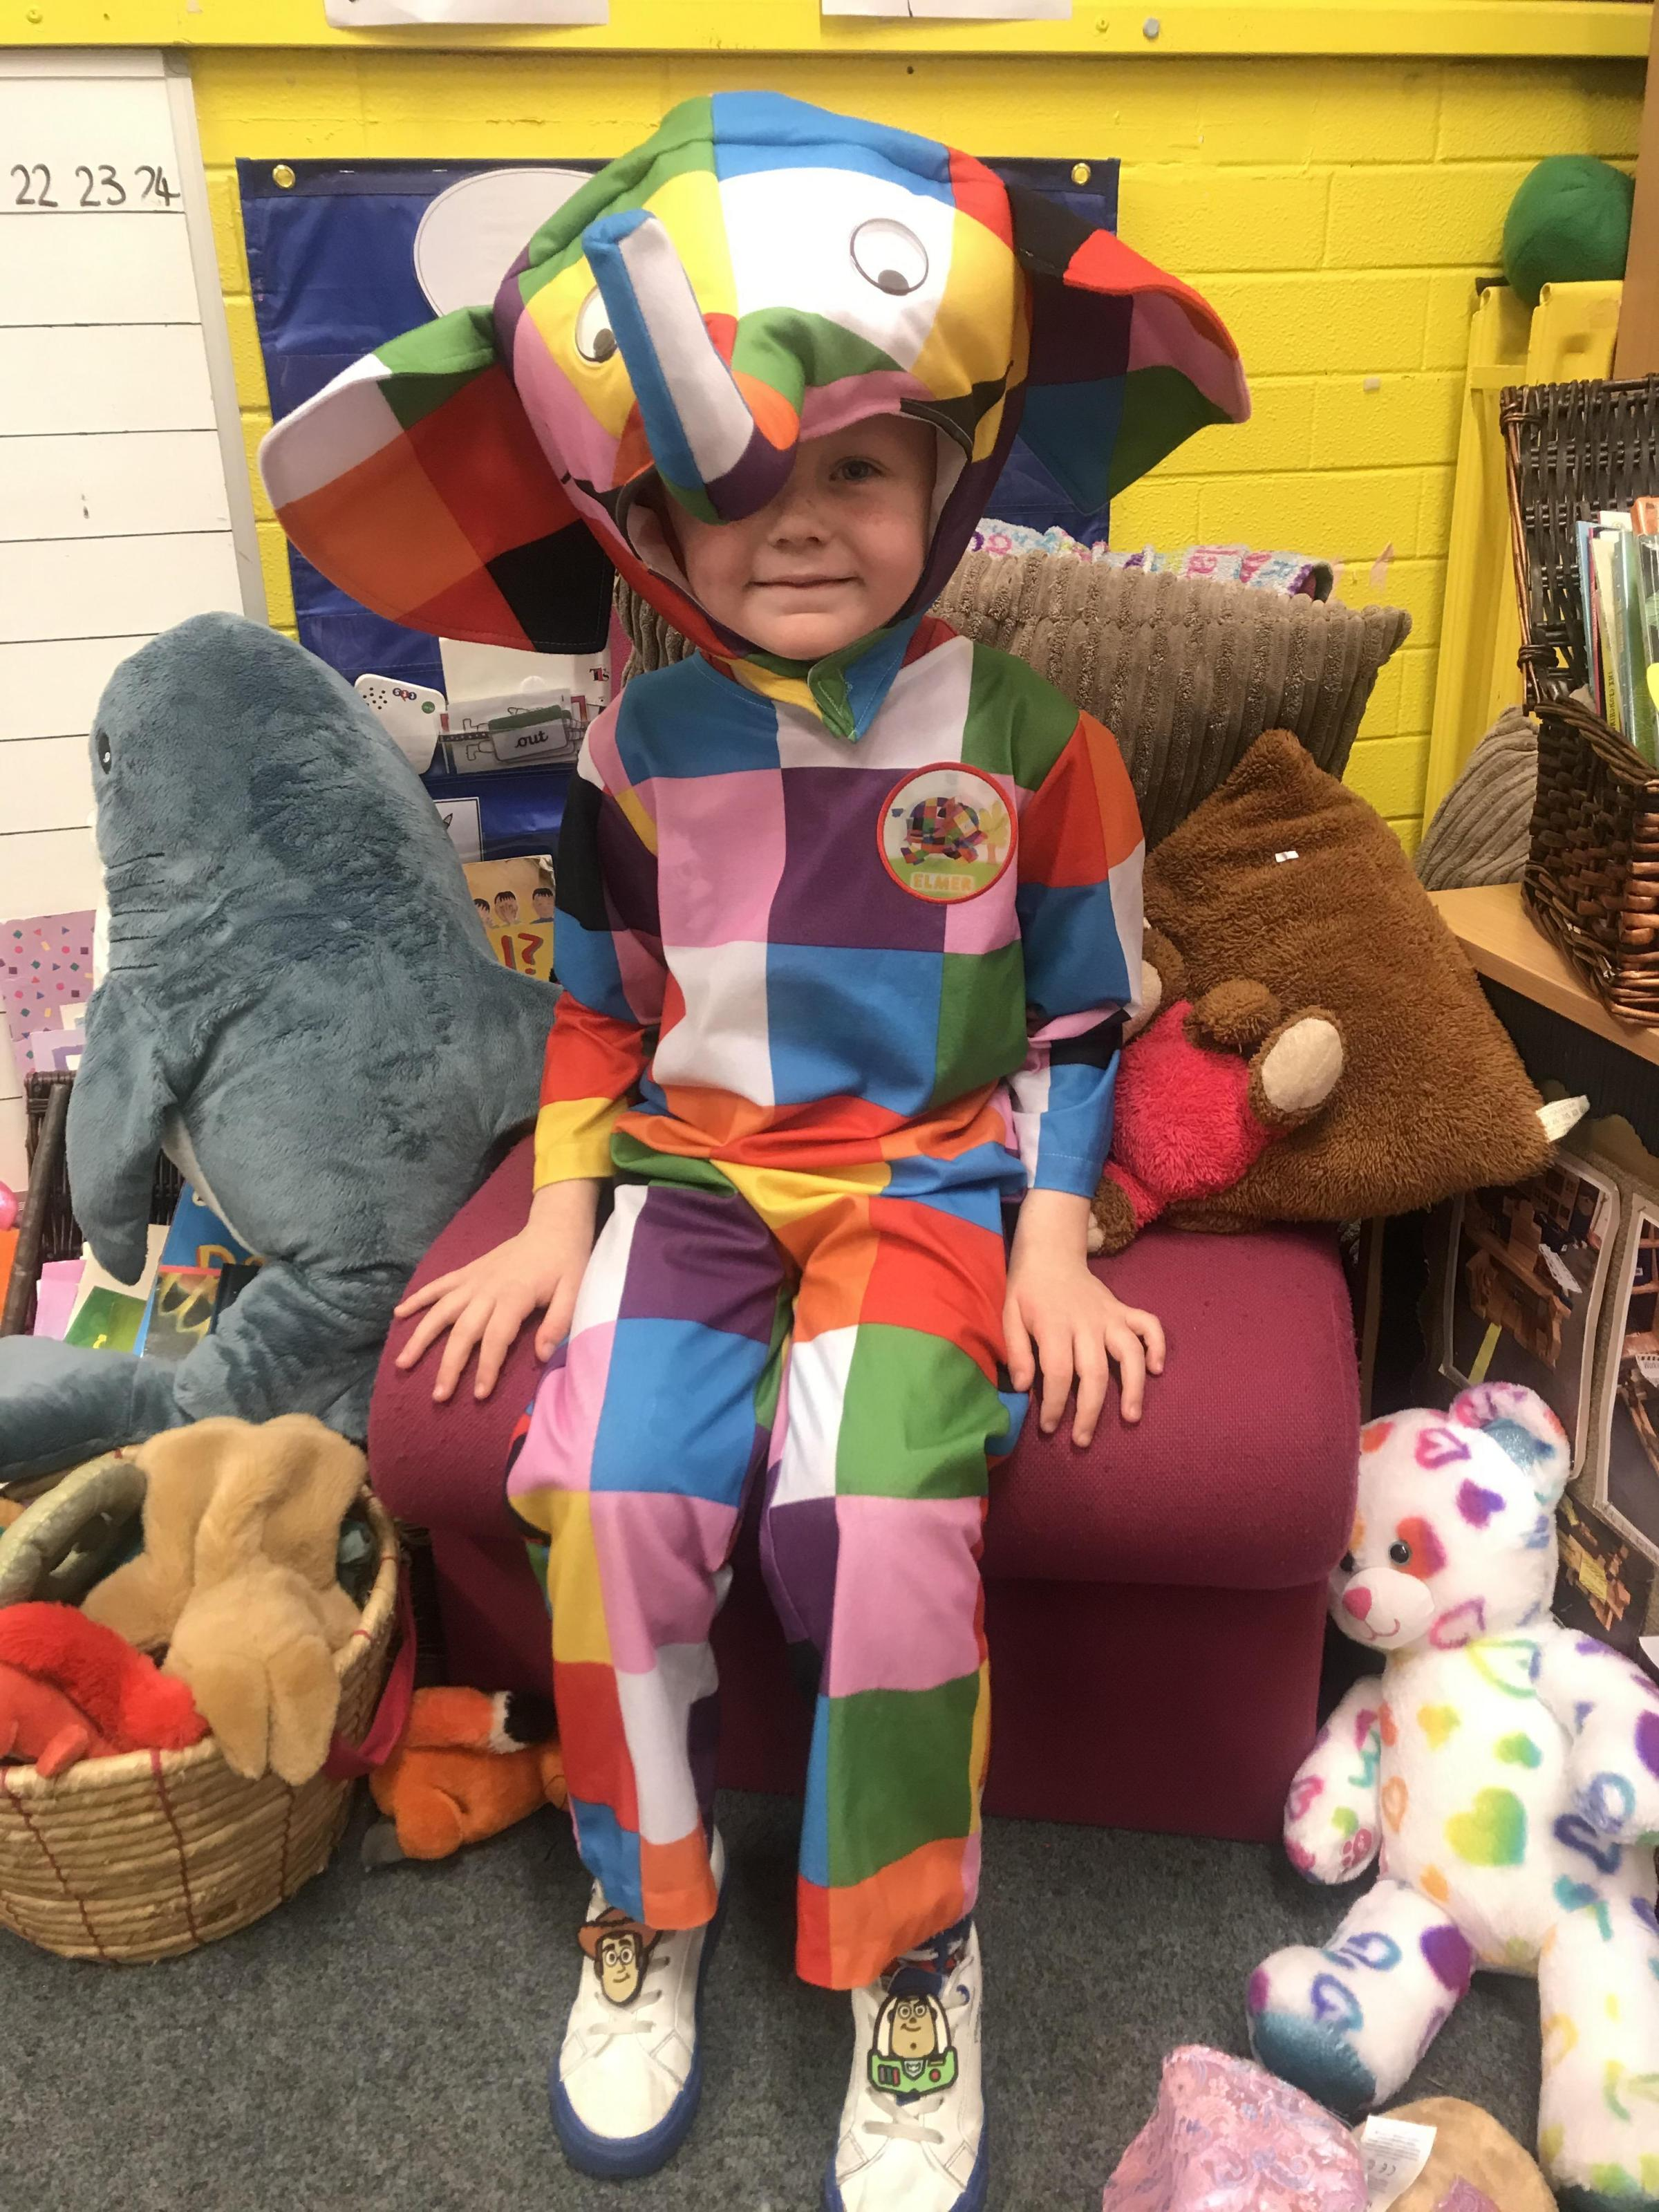 Droitwich Advertiser: At Wolverley Sebright Primary Academy pupils have come dressed as book characters ready for today's celebration of books. This afternoon all the pupils will snuggle down to read their favourite story or will listen to another pupil read from a selection of stories.